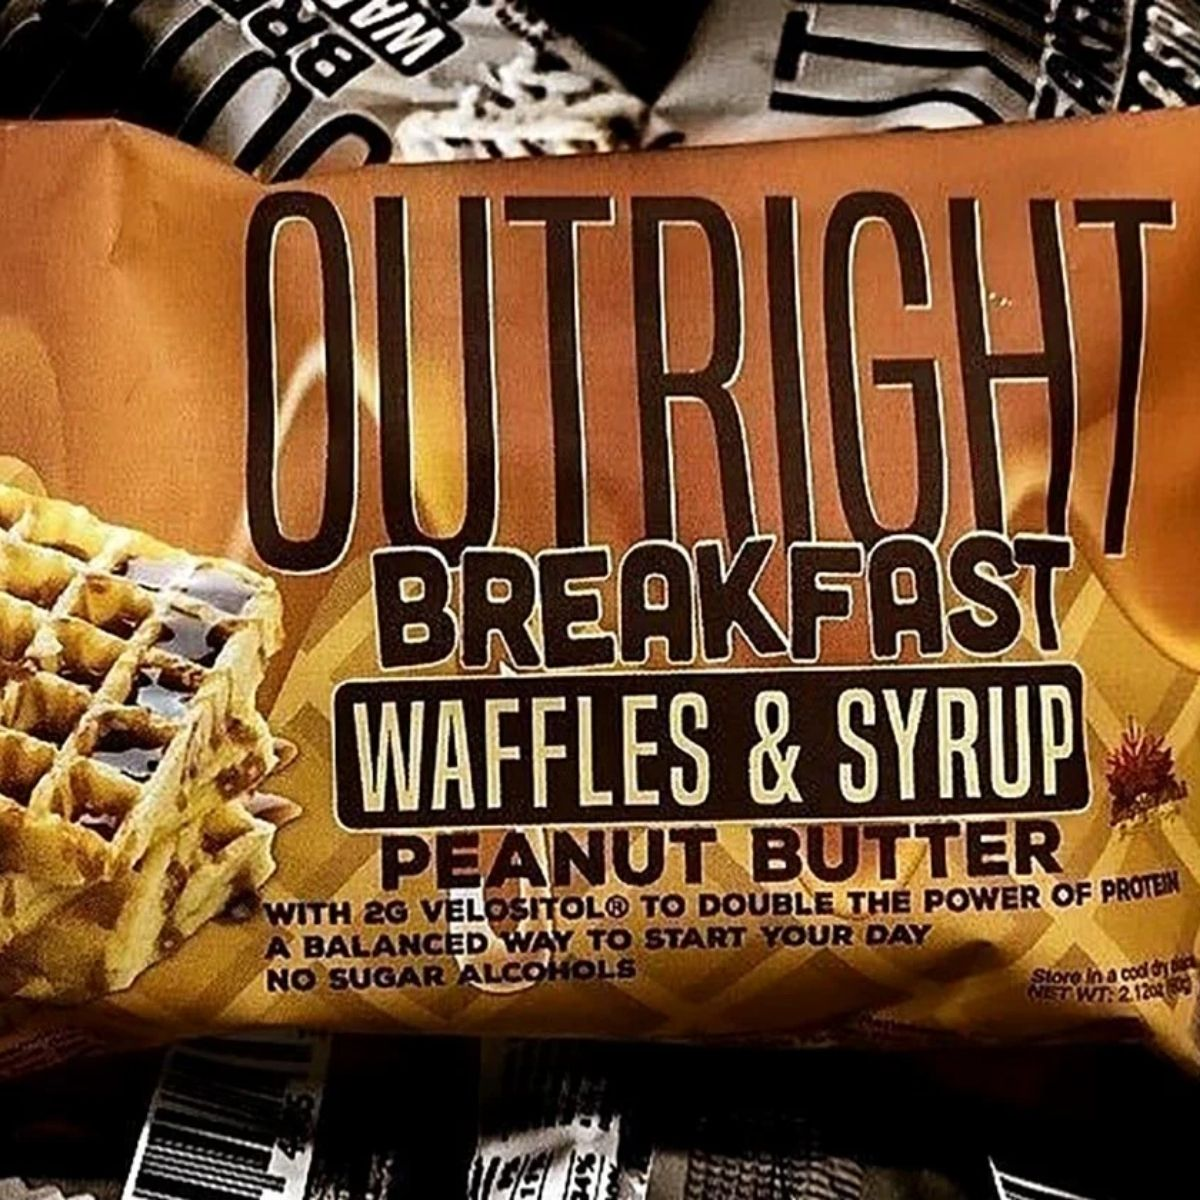 Outright Breakfast Bar Waffles & Syrup